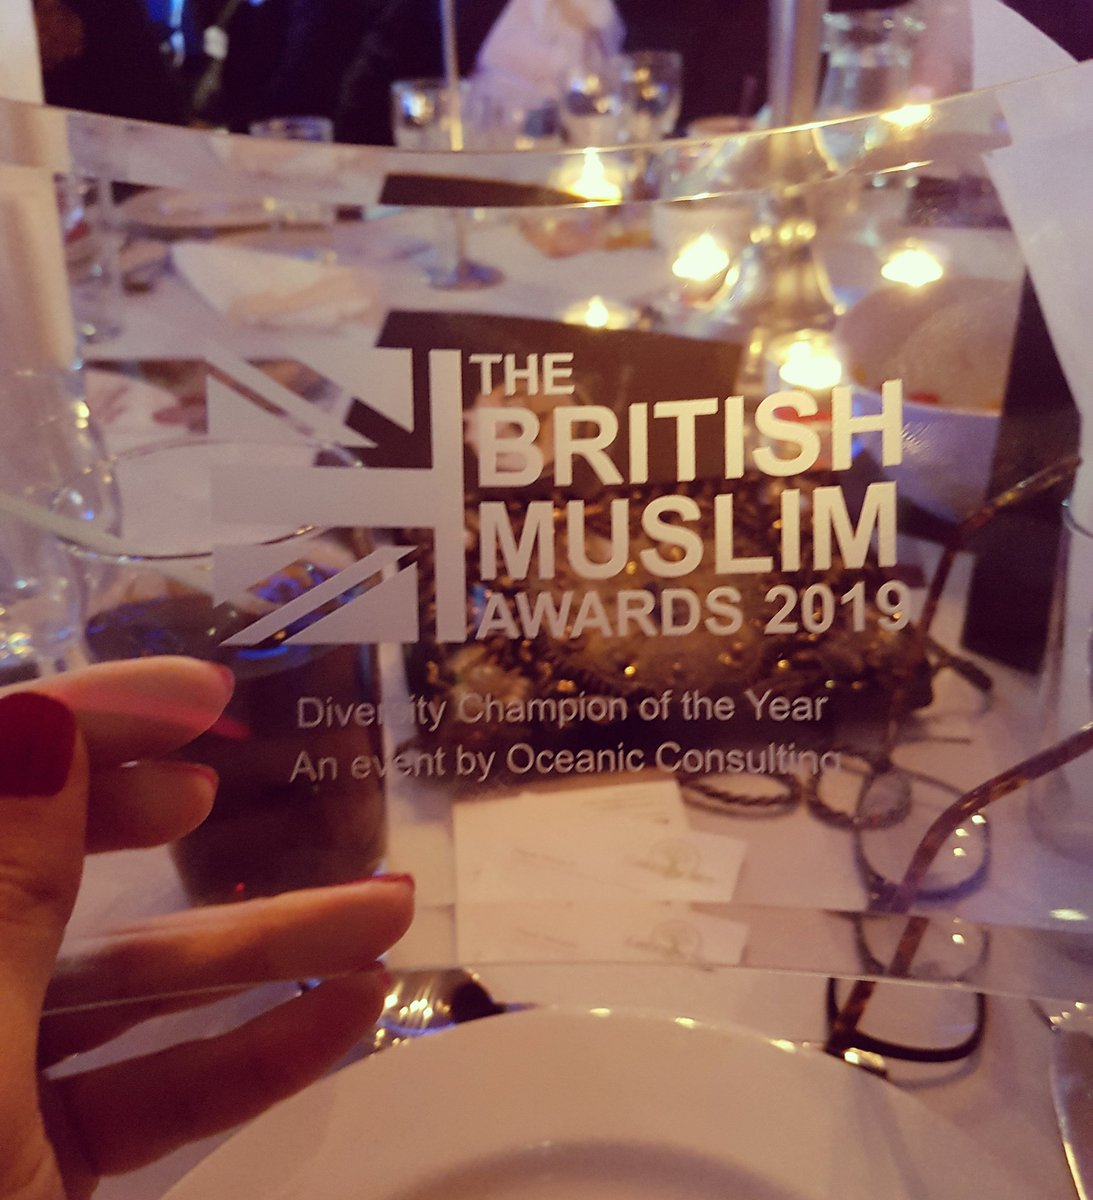 We only went and won. We are diversity champions of the year 2019! #Diversity #PositiveAction @WYPDeeCollins @WYPAngelaWill @WYPJohnRobins @WYPositiveActn